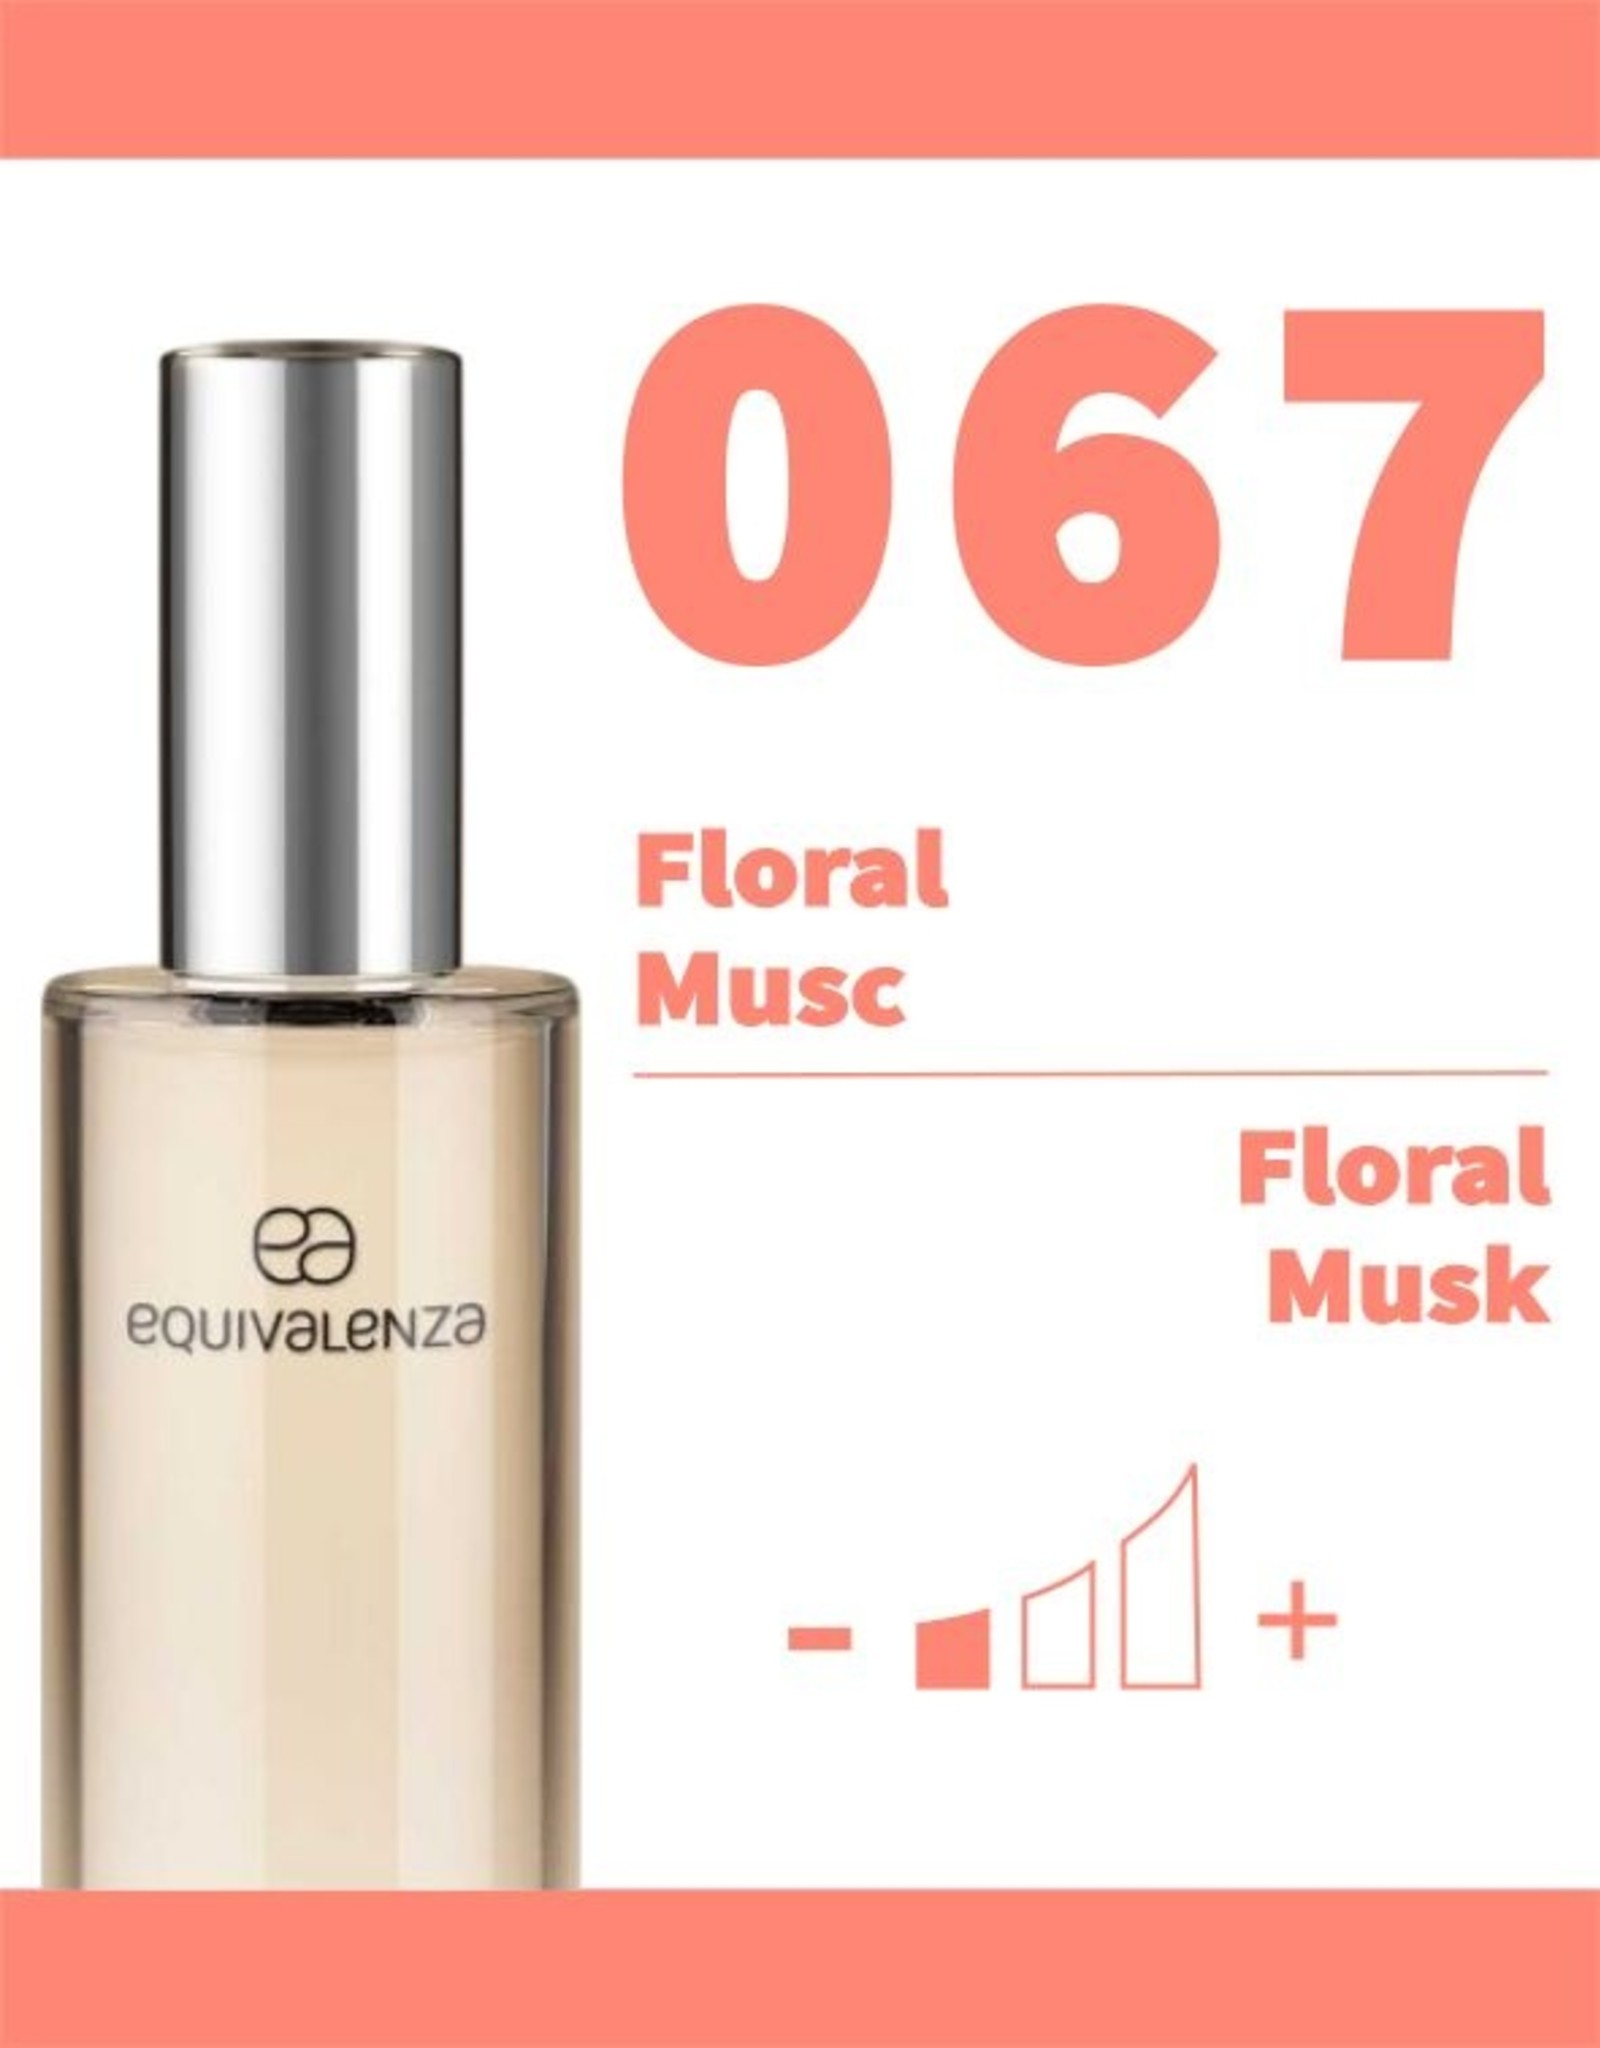 Equivalenza Floral Musc 067